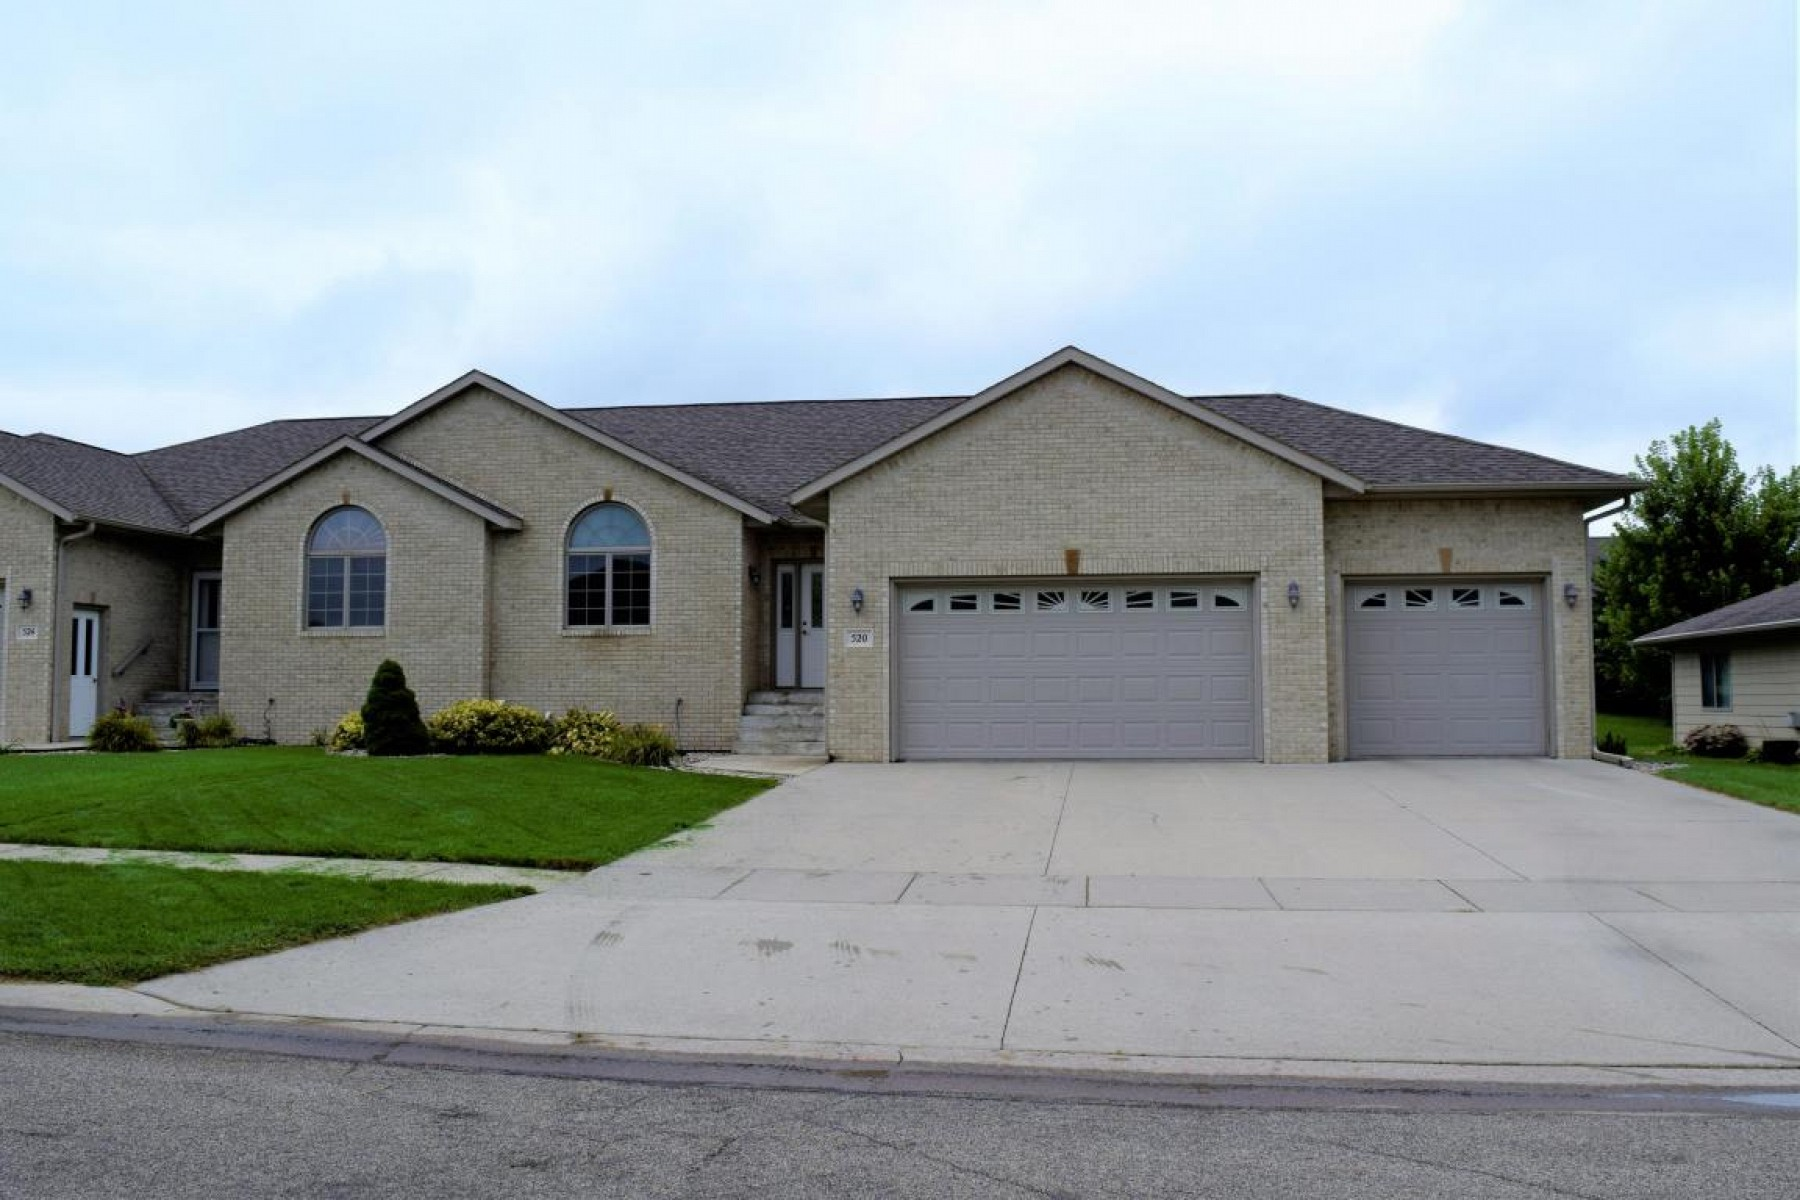 520 TELLURIDE Lane, Brookings, SD 57006